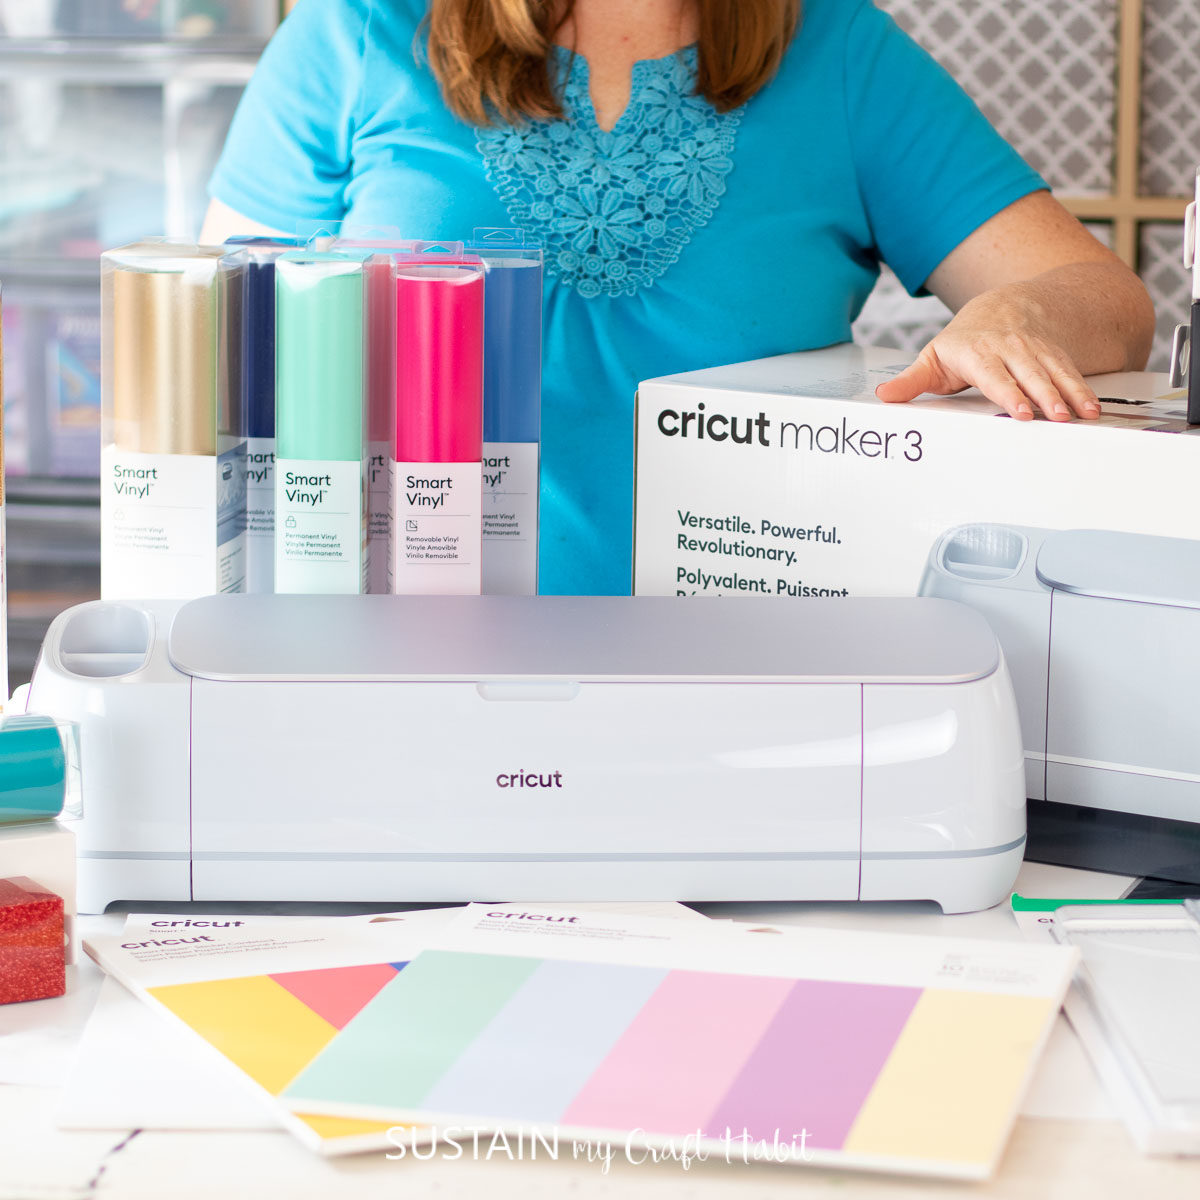 cricut maker 3 on a table in front of a woman